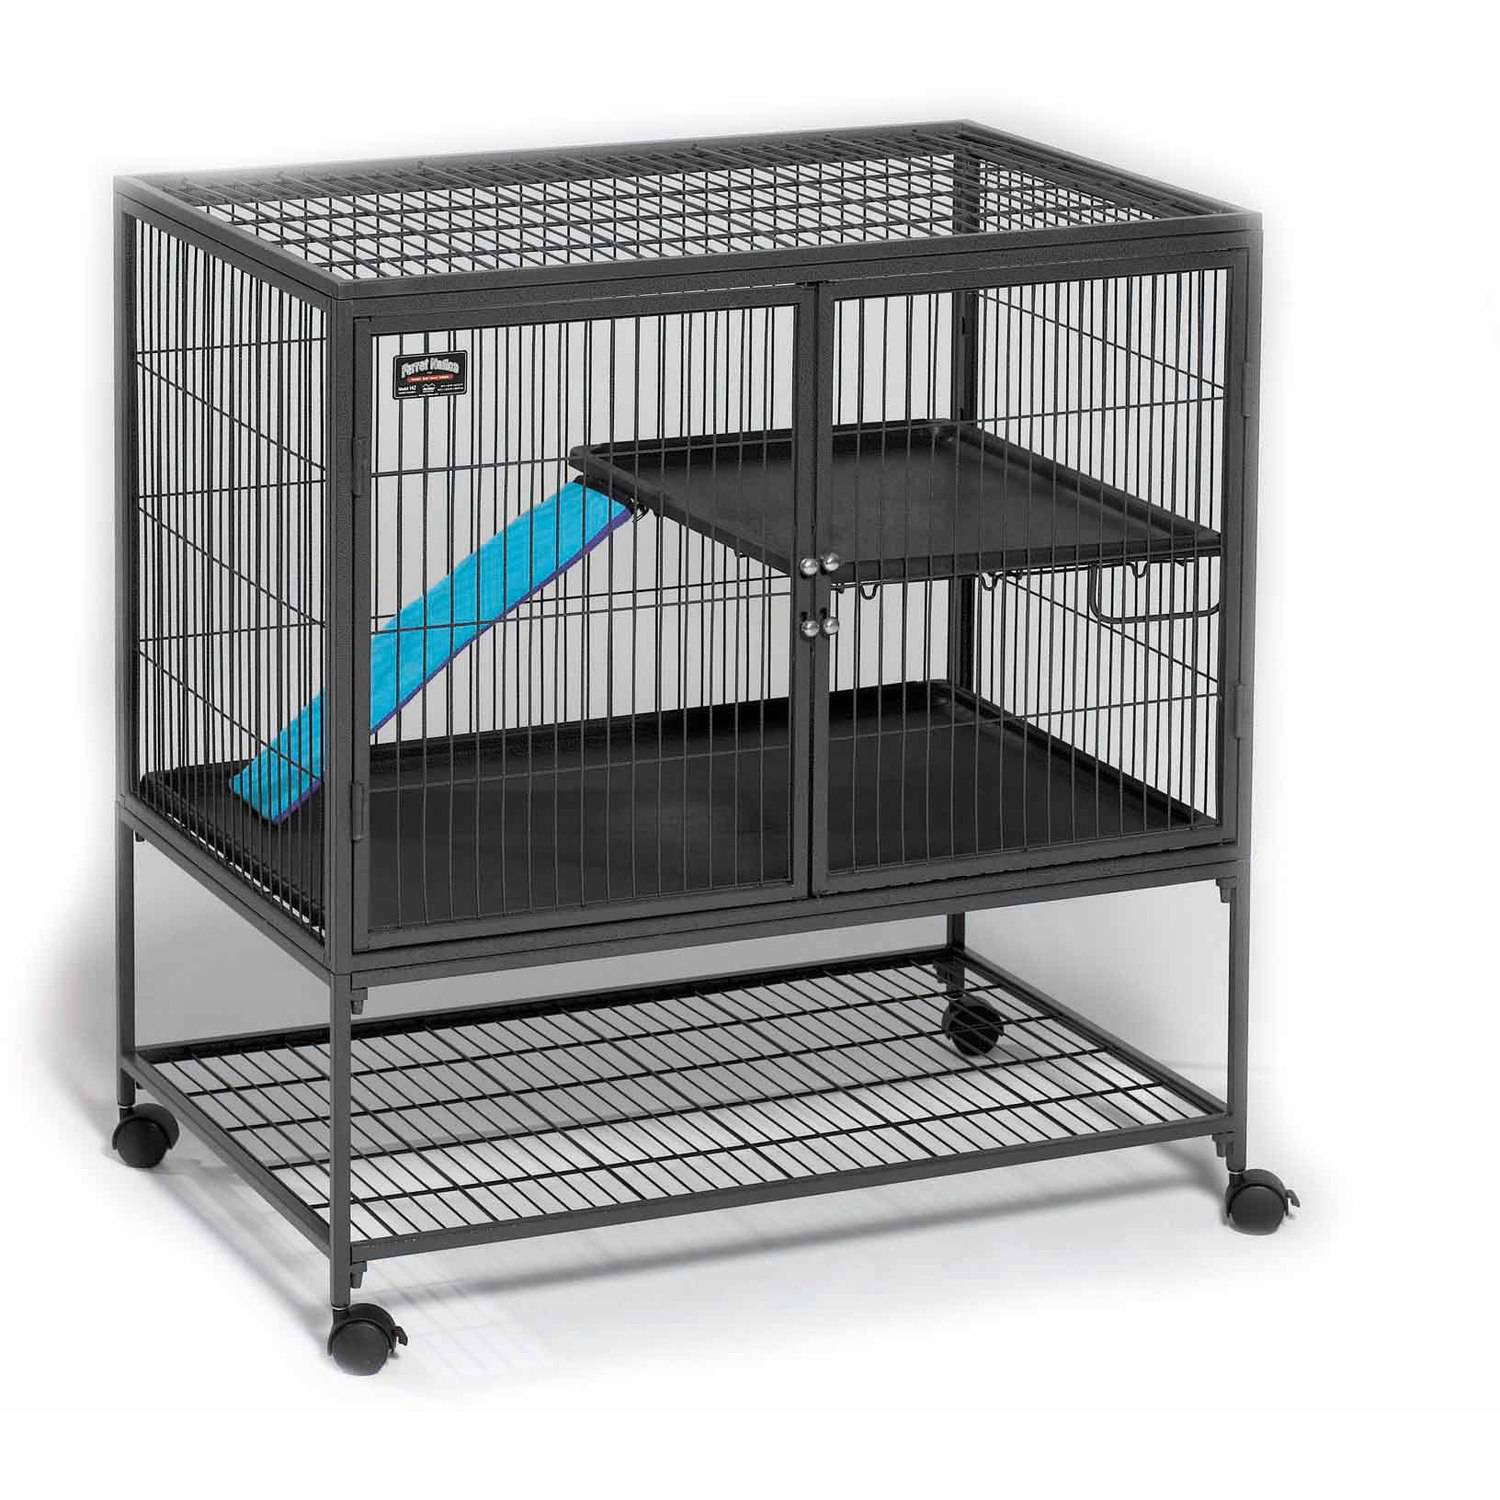 "MidWest Deluxe Ferret Nation Single Unit Ferret Cage (Model 181) Includes 1 Leak-Proof Pans, 1 Shelf, 1 Ramps w/ Ramp Cover & 4 locking Wheel Casters, Measures 36""L x 25""W x 38.5""H Inches"